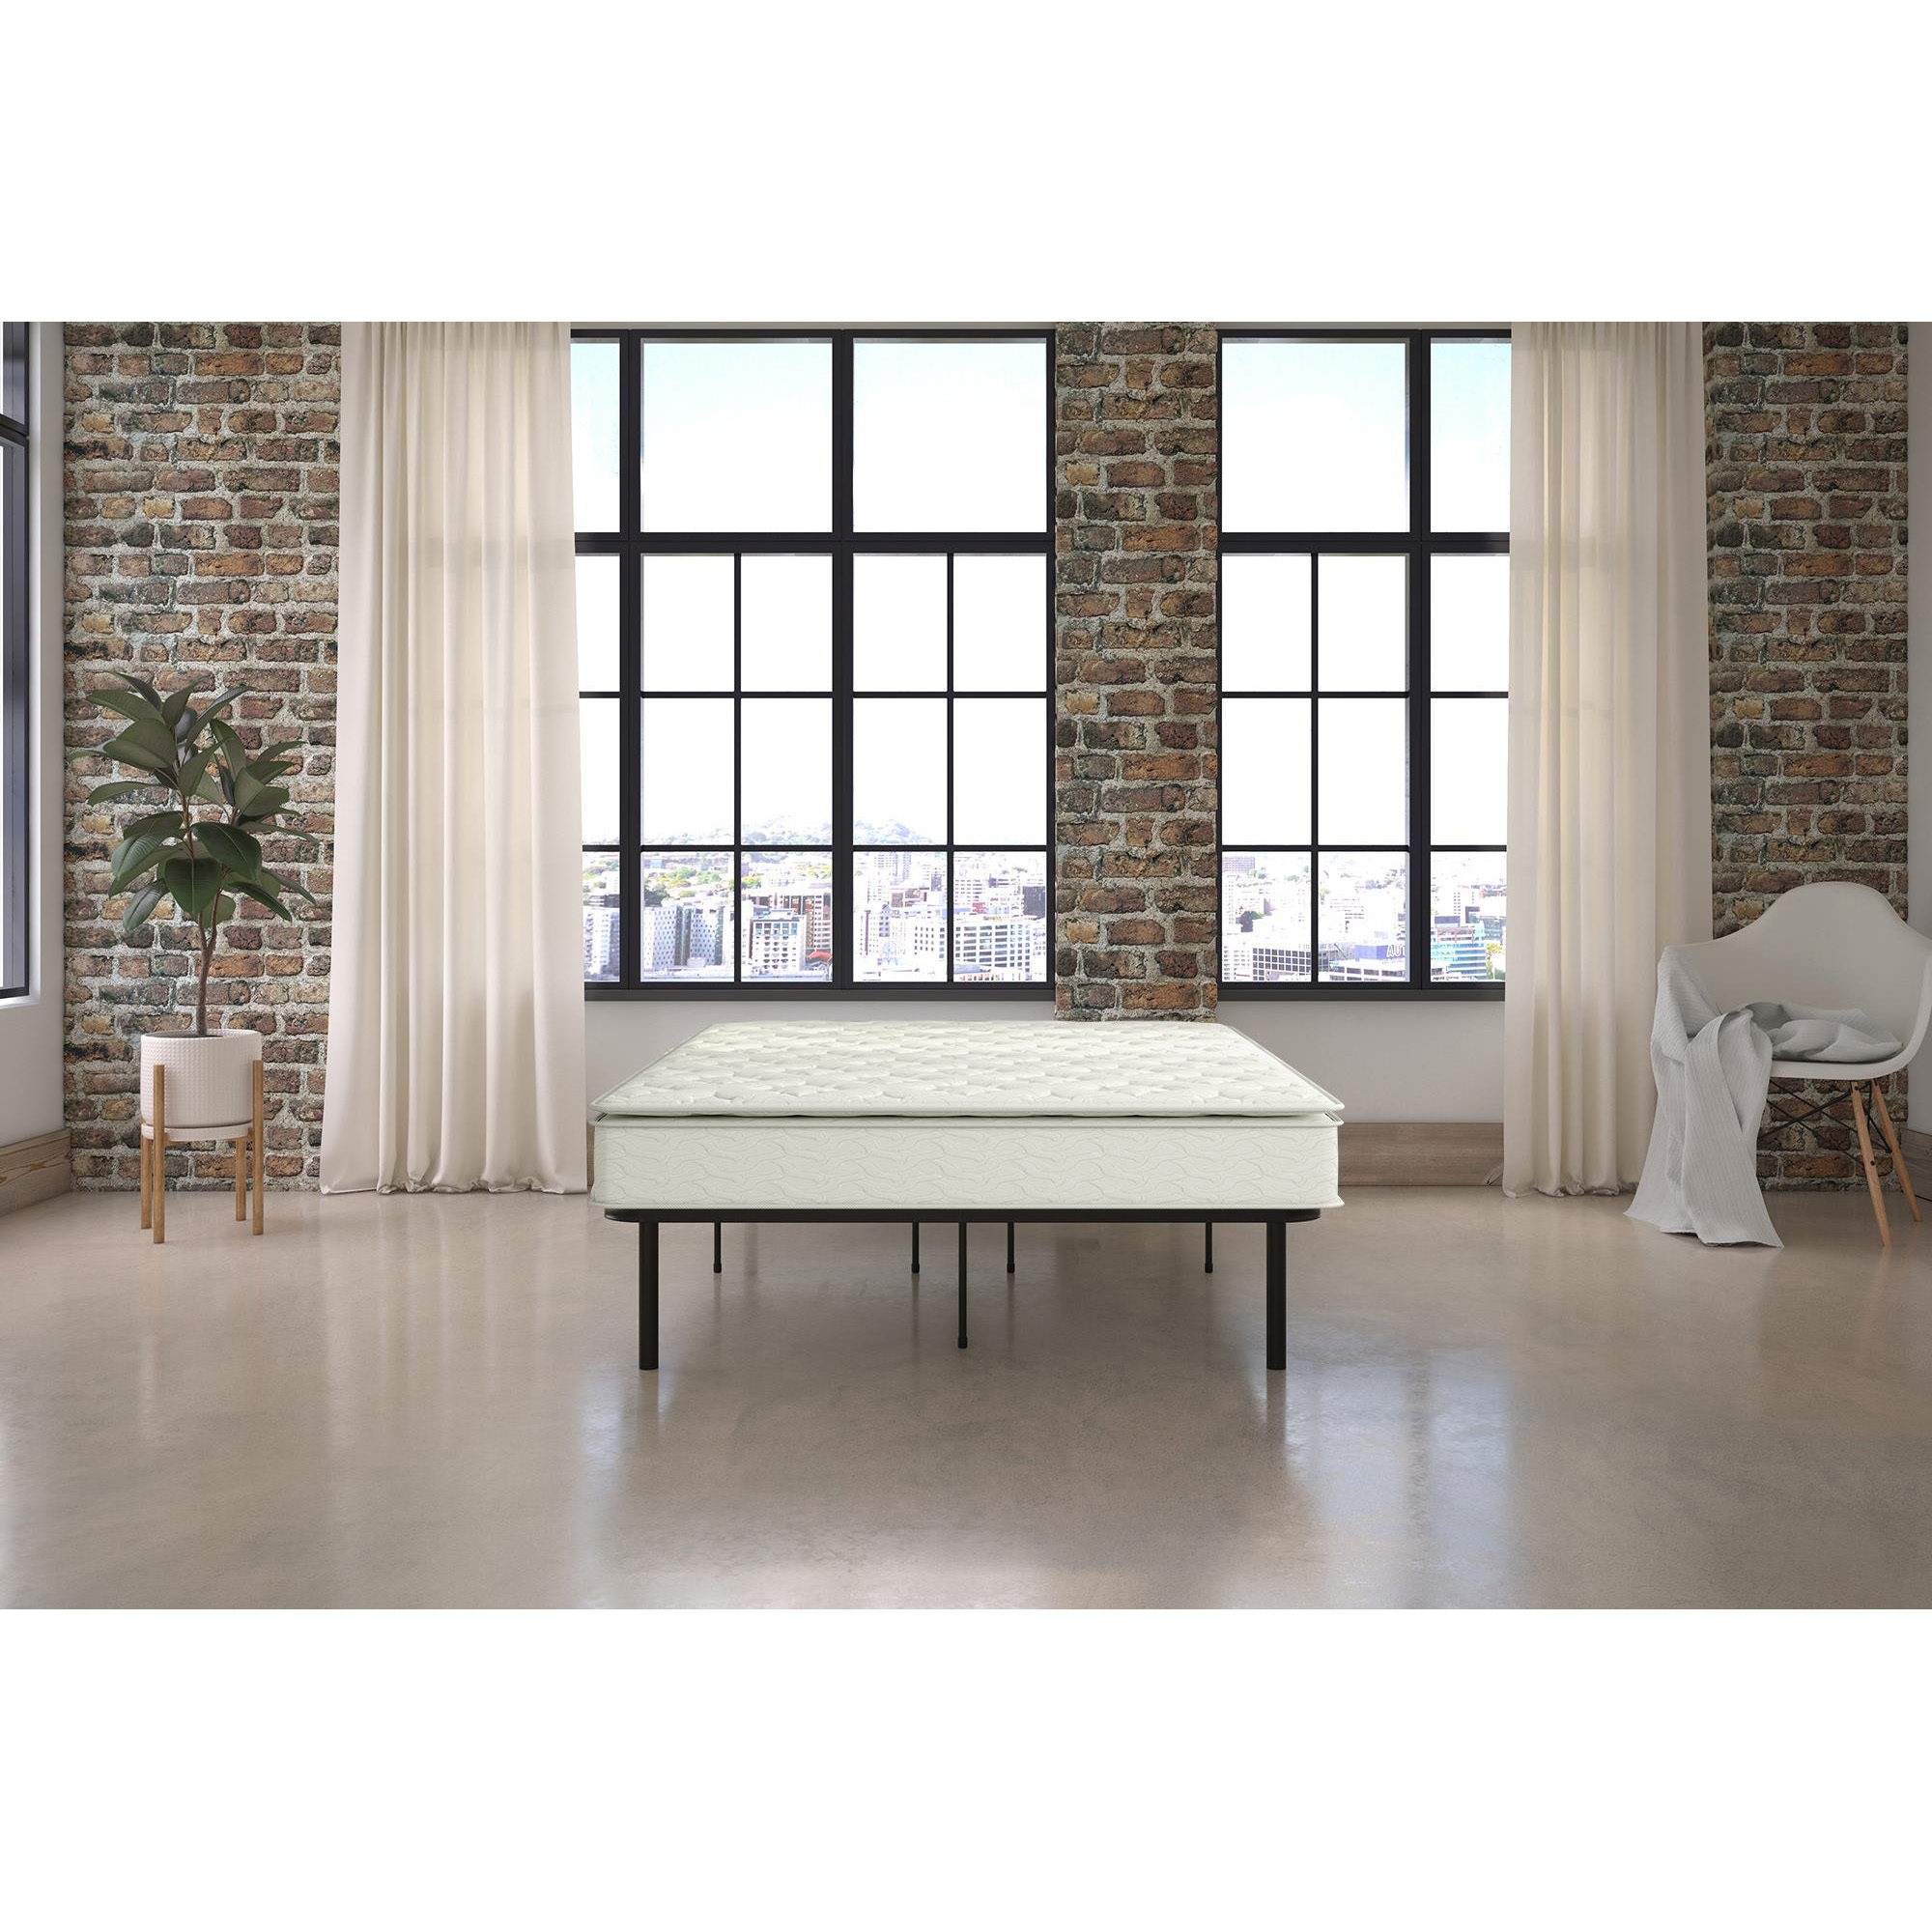 "Signature Sleep Gold Siesta 13"" Independently Encased Coil Pillow Top Mattress & Platform Bed with Euro Wood Slats: Full"